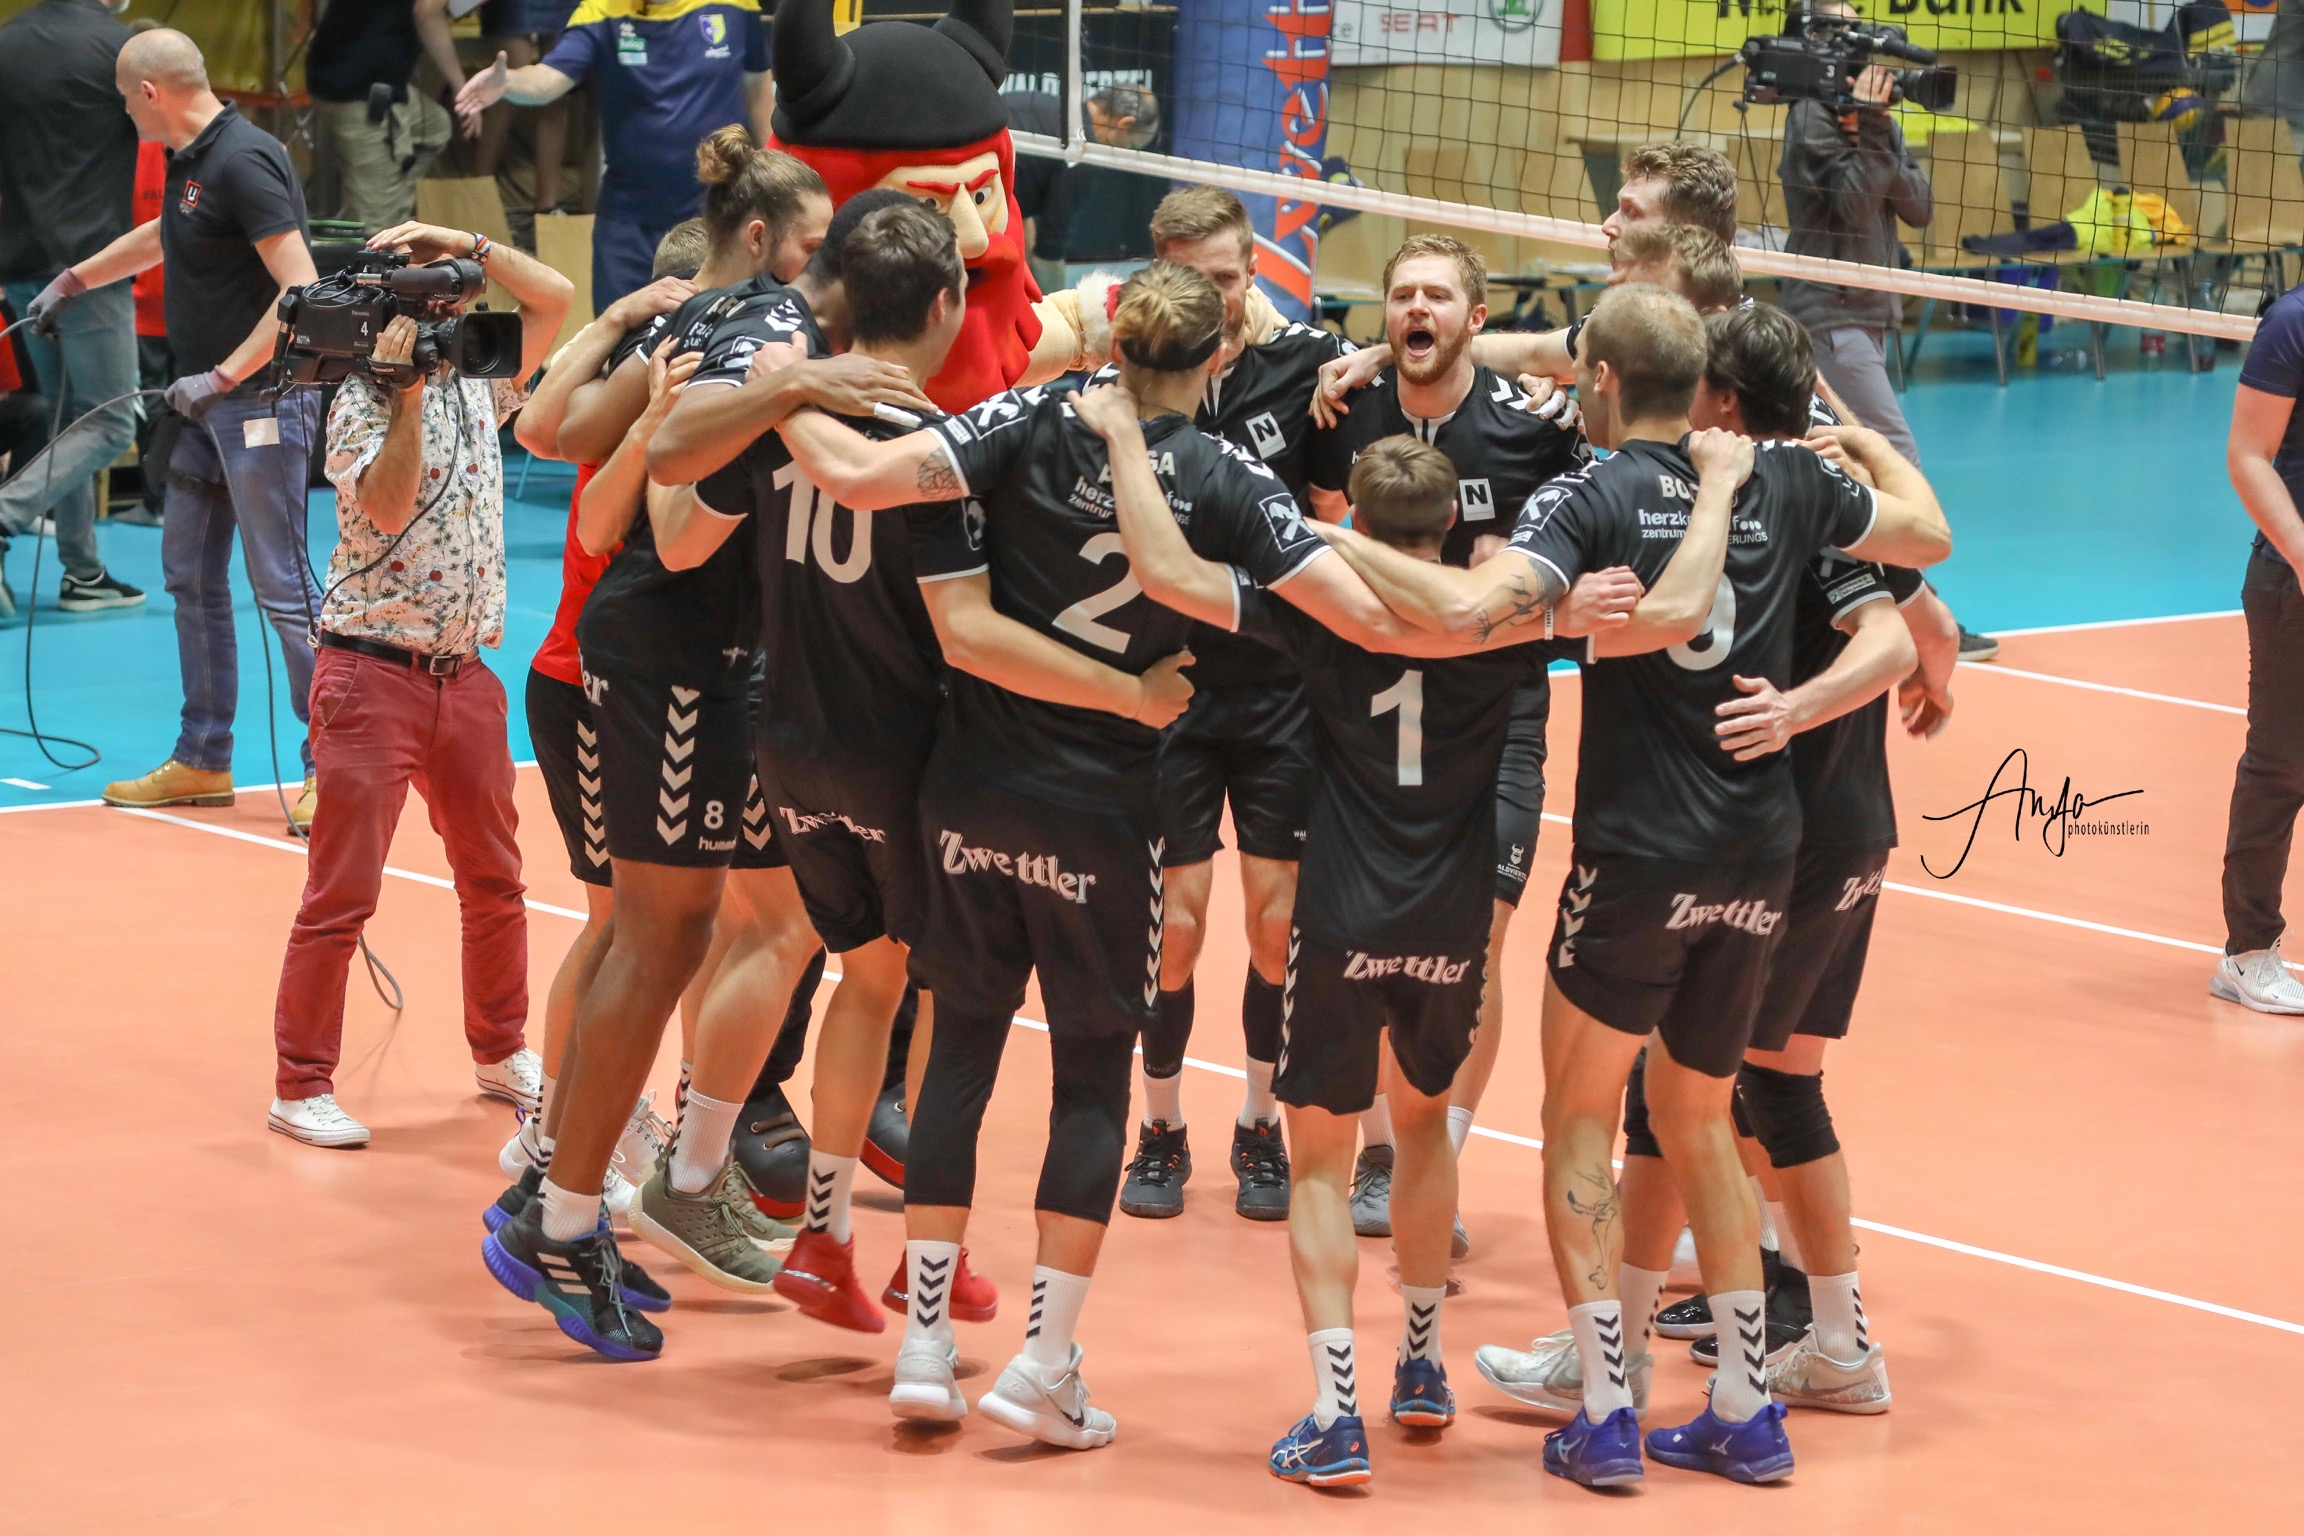 #Austria: Waldviertel defeats Aich/Dob in straight sets and stretch the series 1-3!